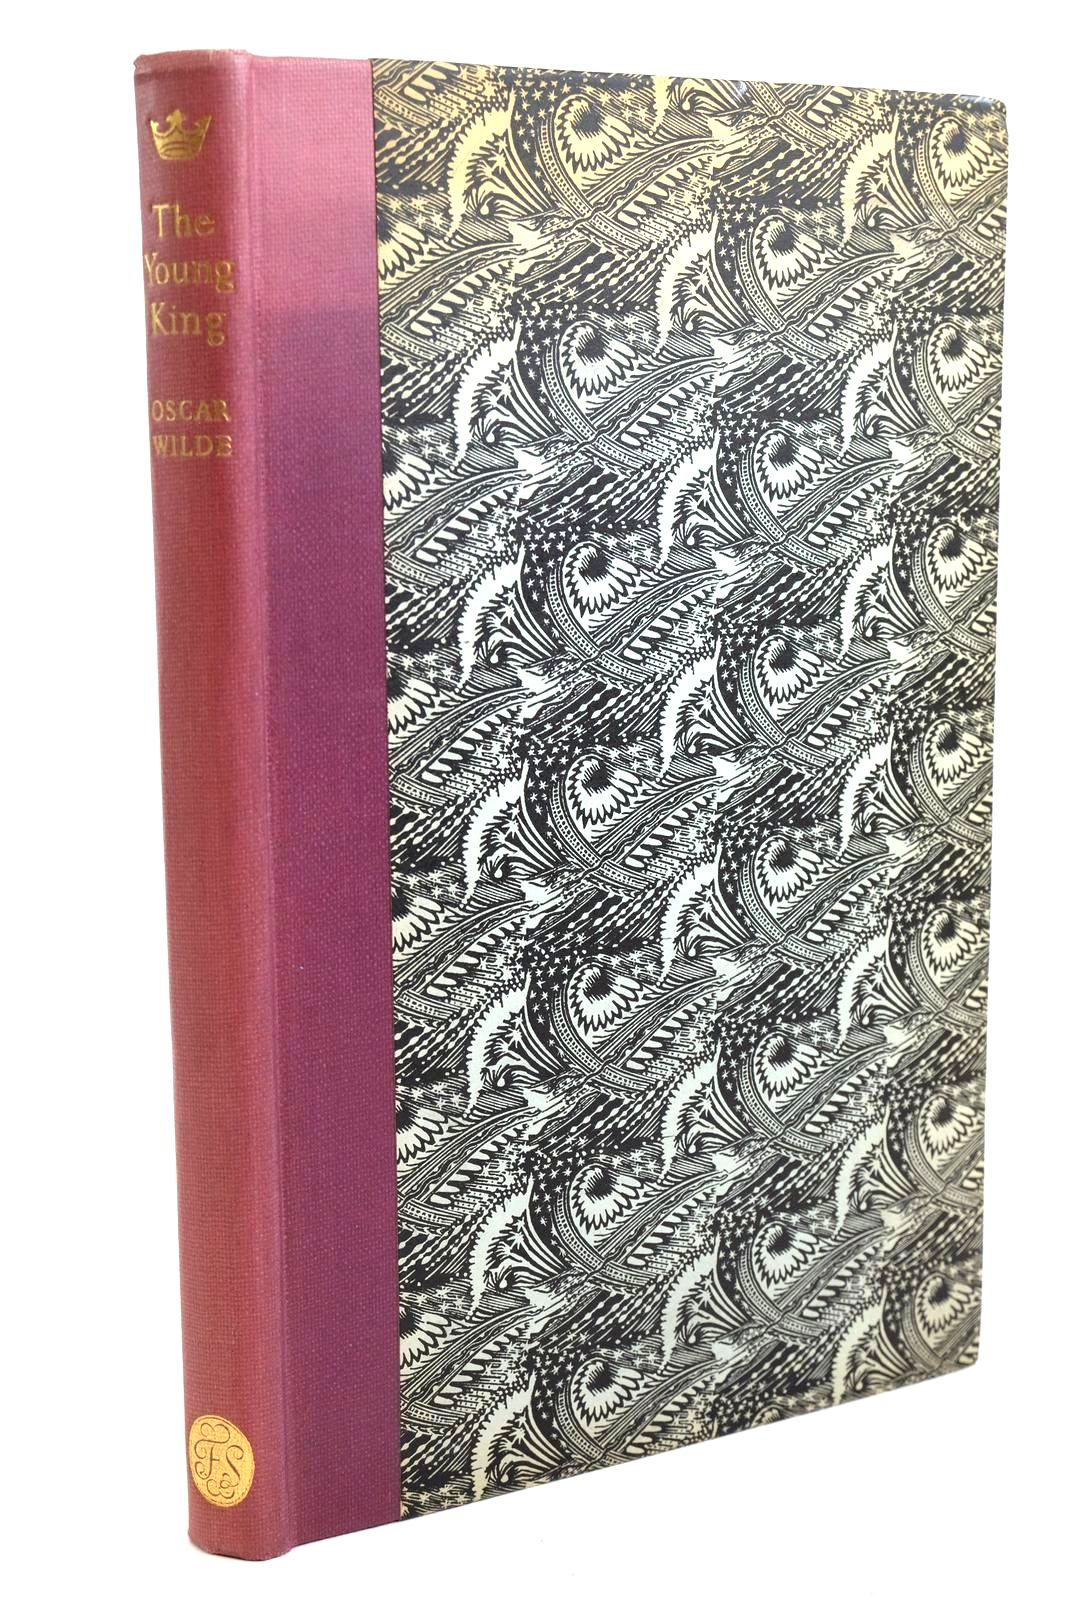 Photo of THE YOUNG KING AND OTHER STORIES written by Wilde, Oscar illustrated by Gaastra, John published by Folio Society (STOCK CODE: 1320574)  for sale by Stella & Rose's Books